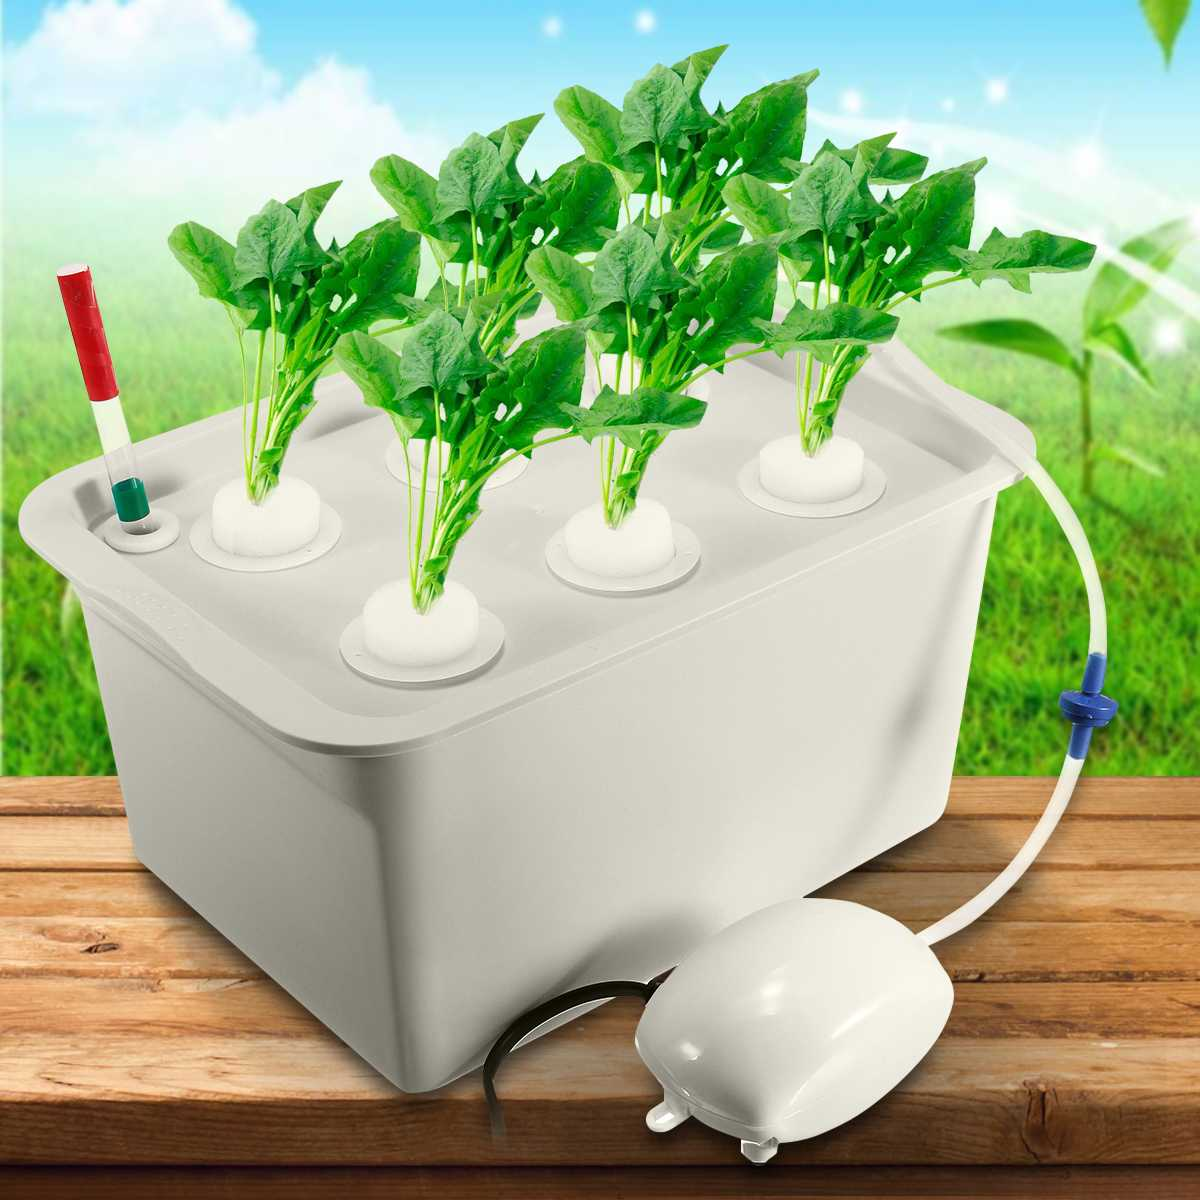 Hydroponic-Systems-Kit Cultivation-Box Seedling-Grow-Box-Kit Nursery-Pots Plant-Site title=